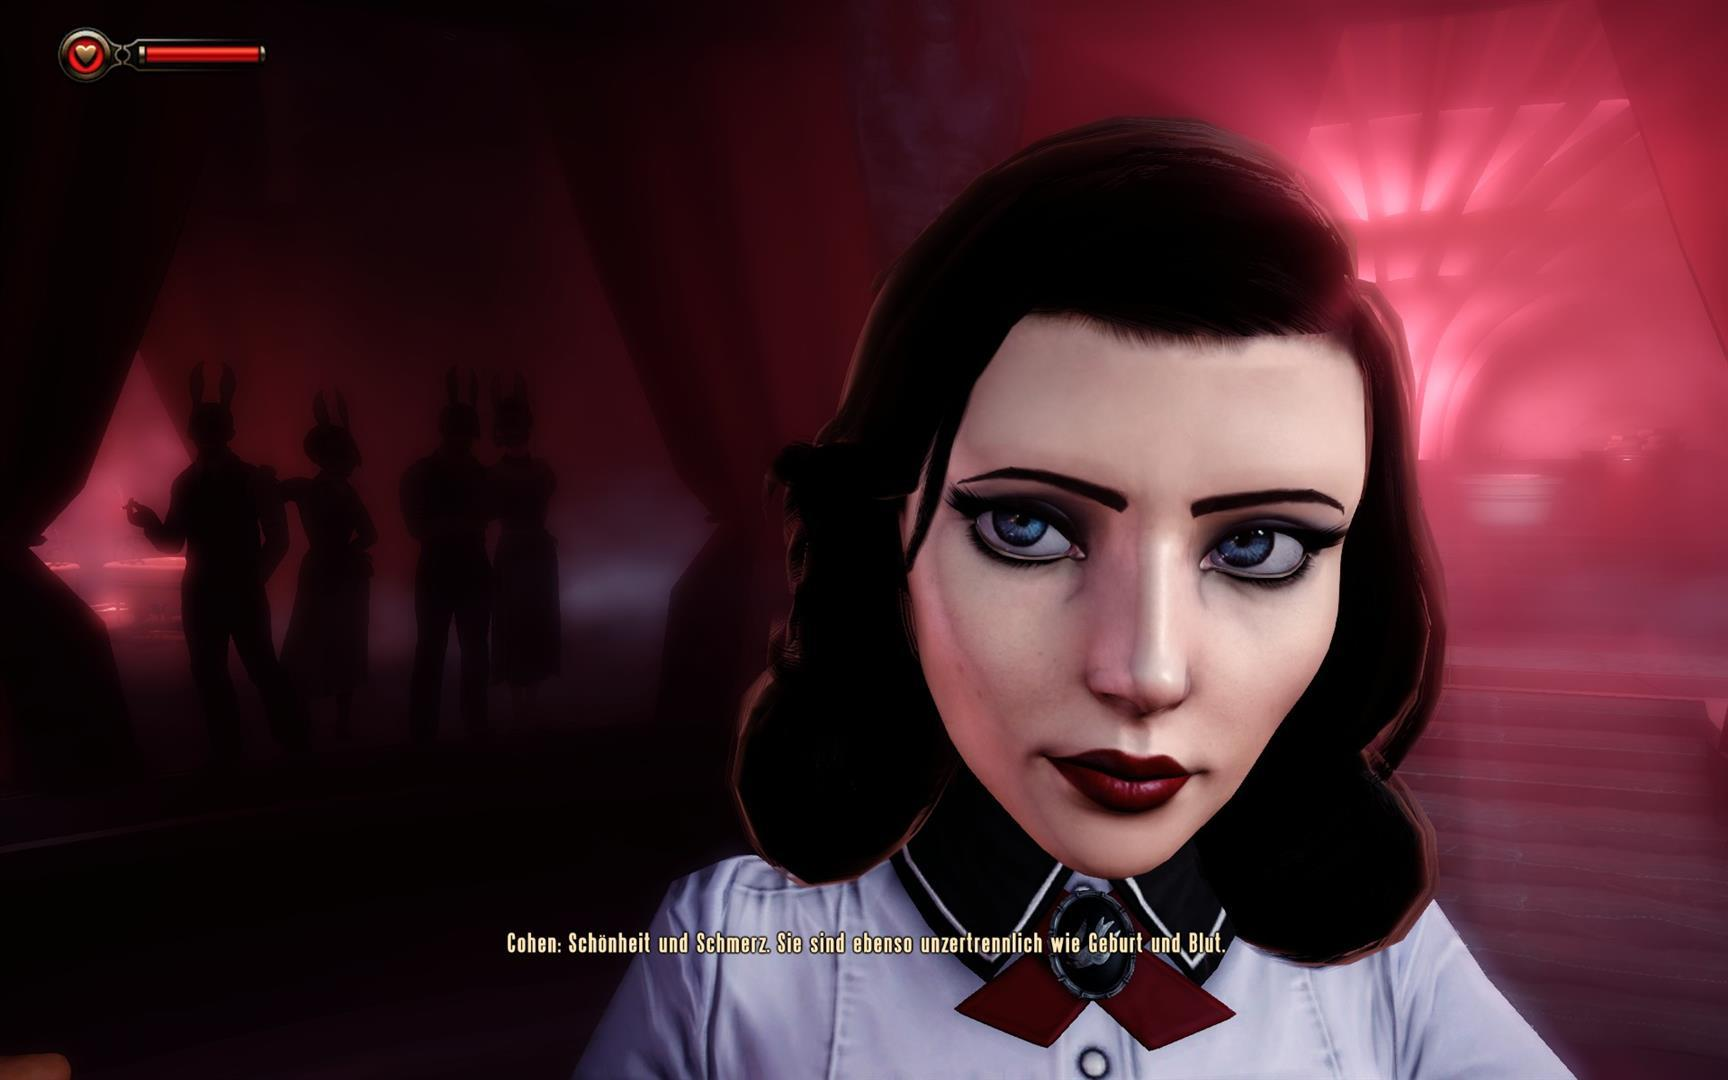 bioshockinfinite_2017i4sui.jpg